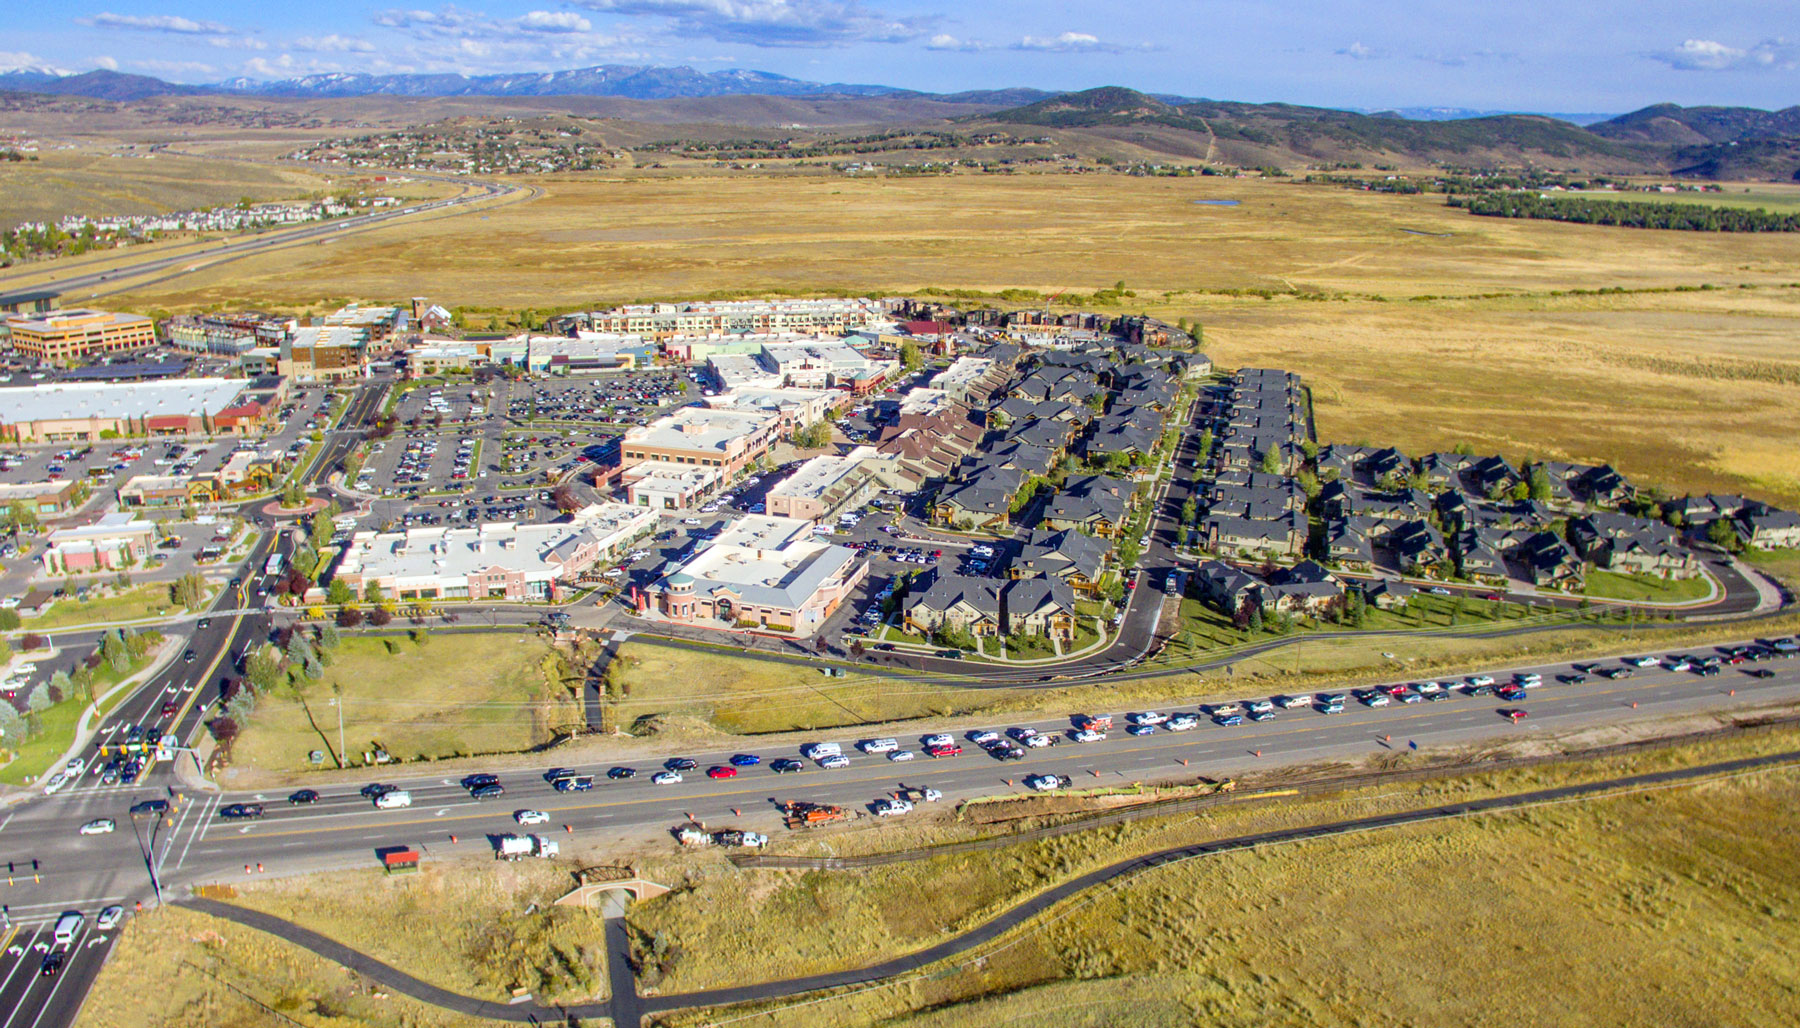 Dining, shopping, relaxing, all available at the Redstone Shopping Center located in Park City, Utah.